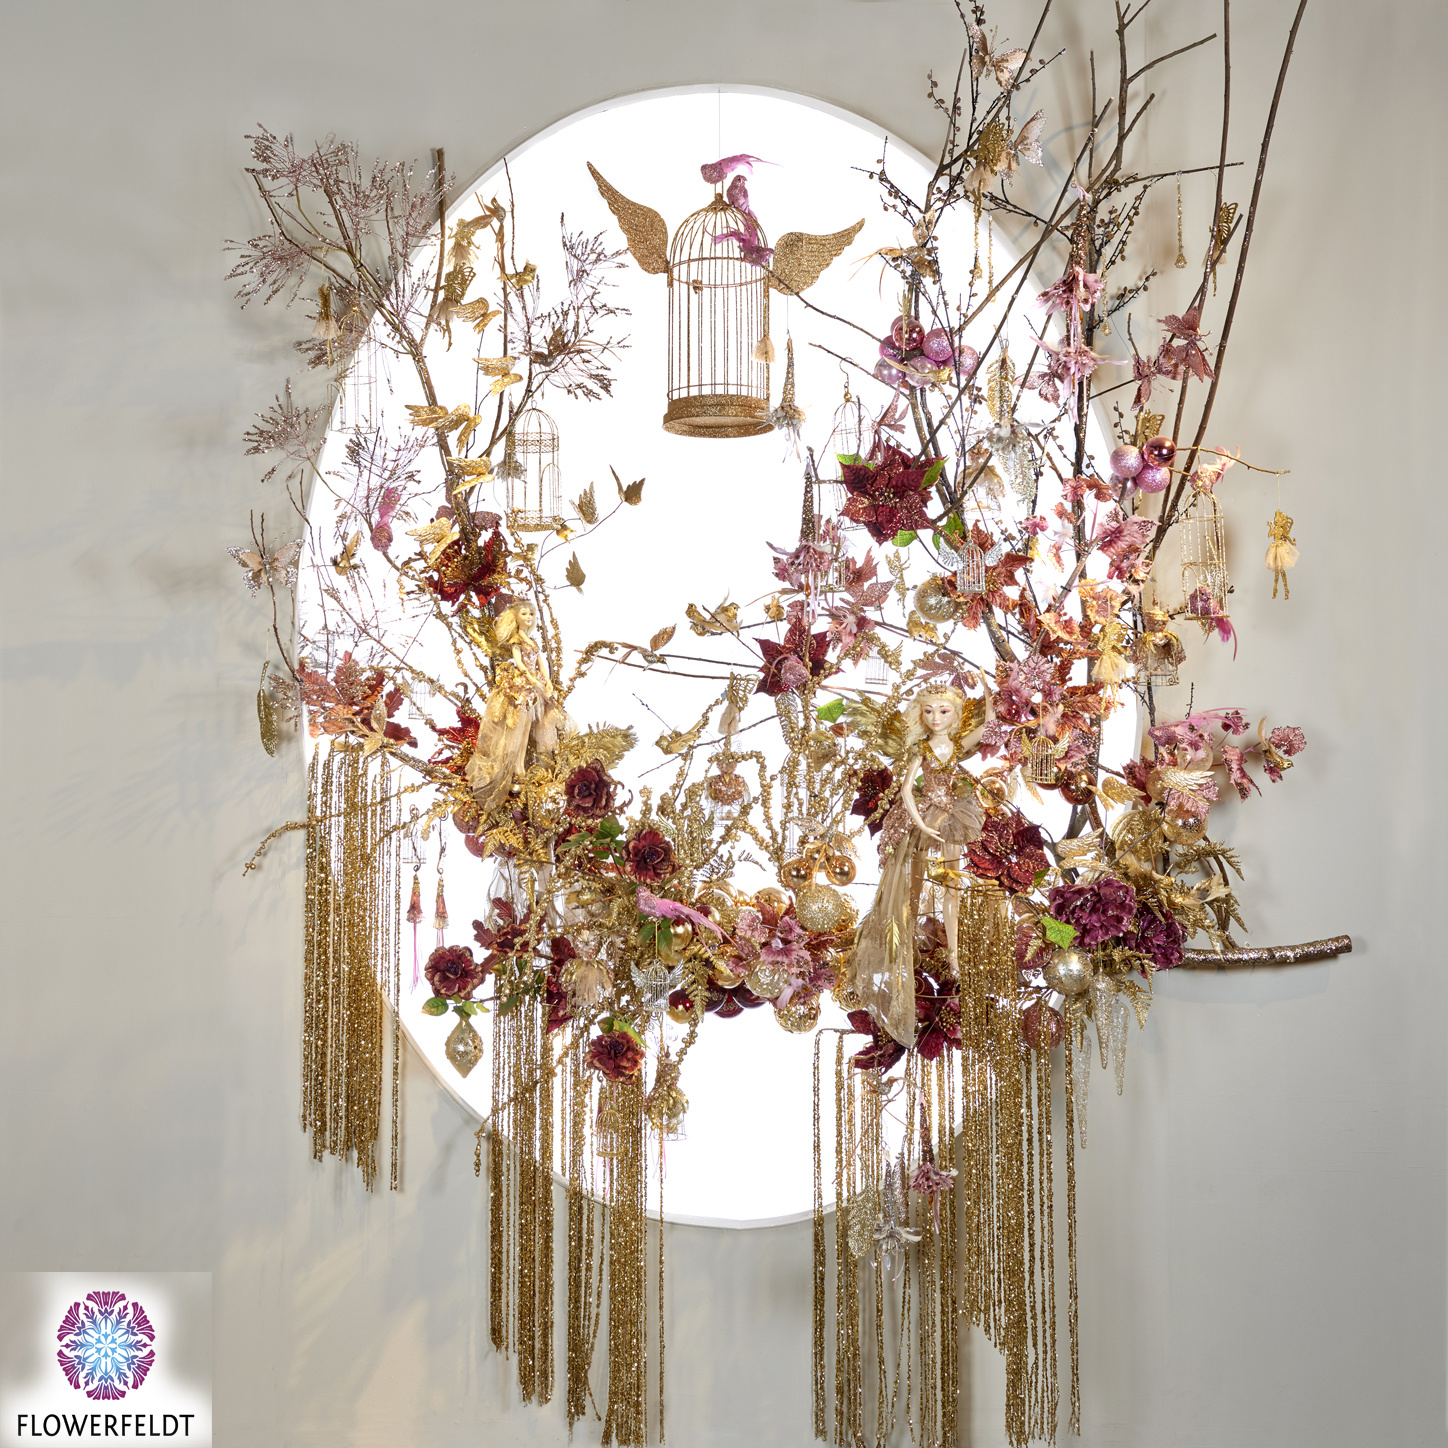 Goodwill Luxe wanddecoratie Fairy tale - H340 cm